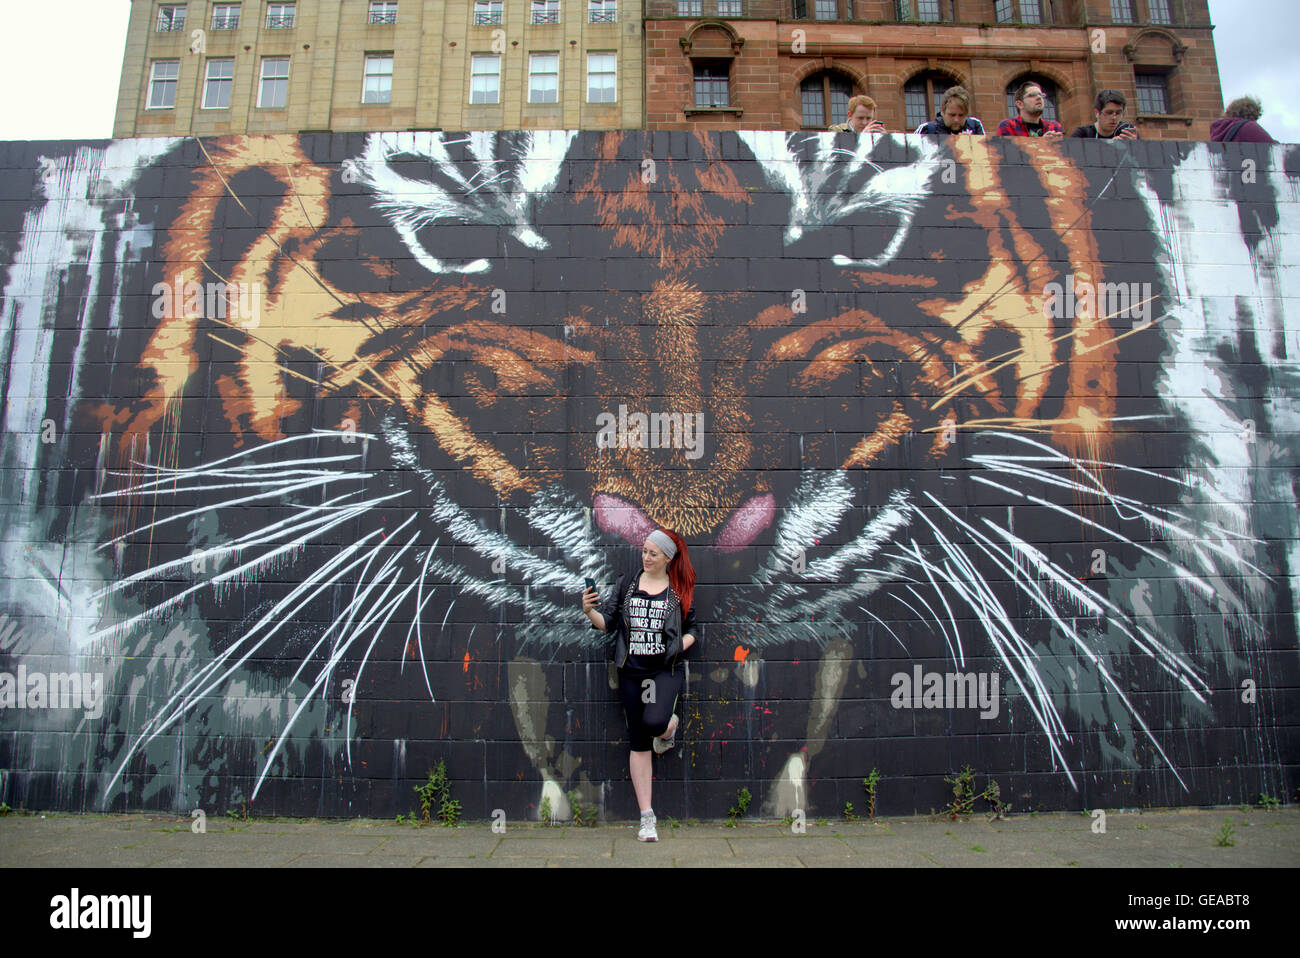 Glasgow, Scotland, UK 23rd July 2016. The Tiger mural on the River Clyde finds itself at the centre of the Pokémon phenome. The artwork by local Artist Art Pistol has found itself at the centre of the city's Poke Stop Glasgow's newest social hub for gamers of all ages. Attracting a wide gamut  of people to the Riverside the strange sight of a large crowd individually contemplating their phones is proving one of the city's latest attractions. Credit:  Gerard Ferry/Alamy Live News Stock Photo